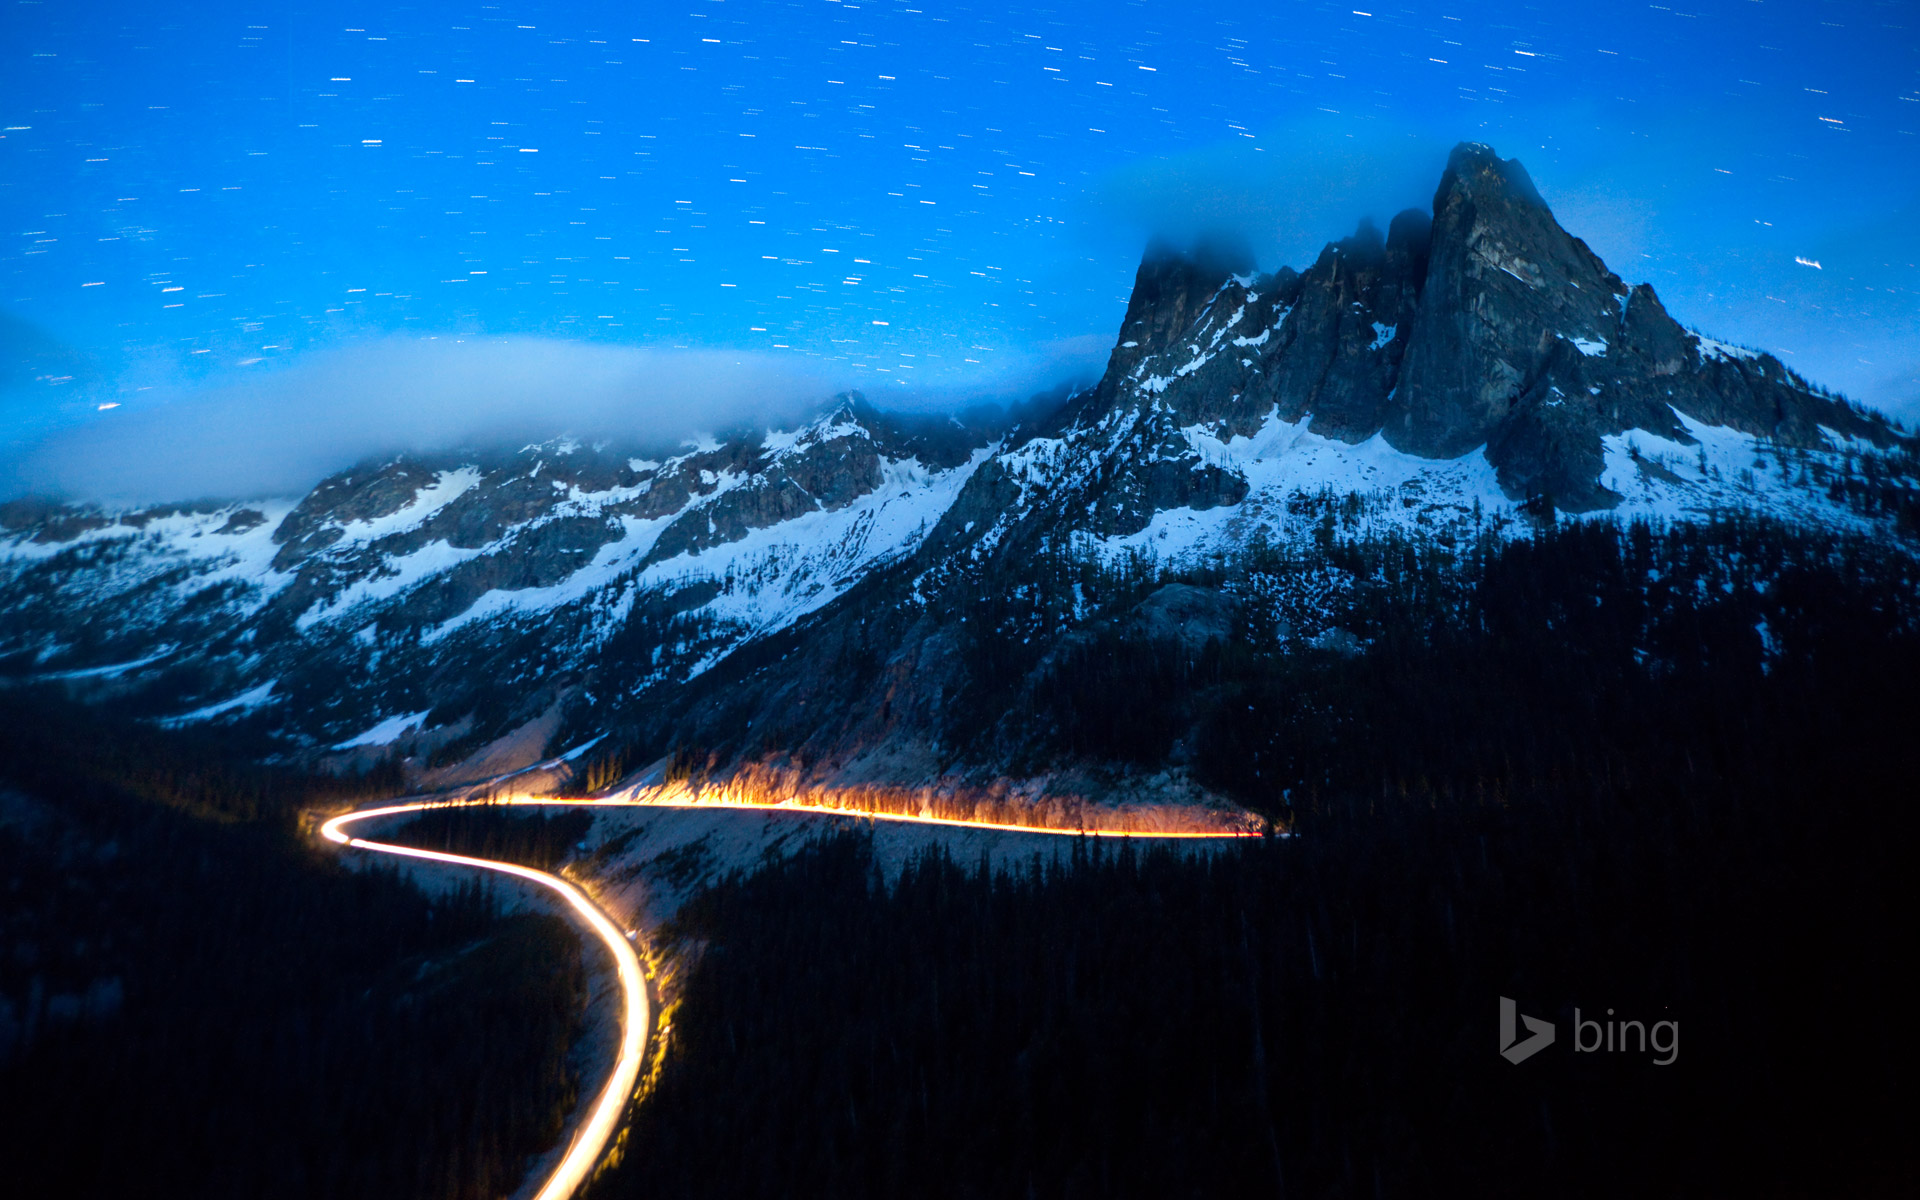 Headlights on State Route 20, the North Cascades Scenic Highway, Washington